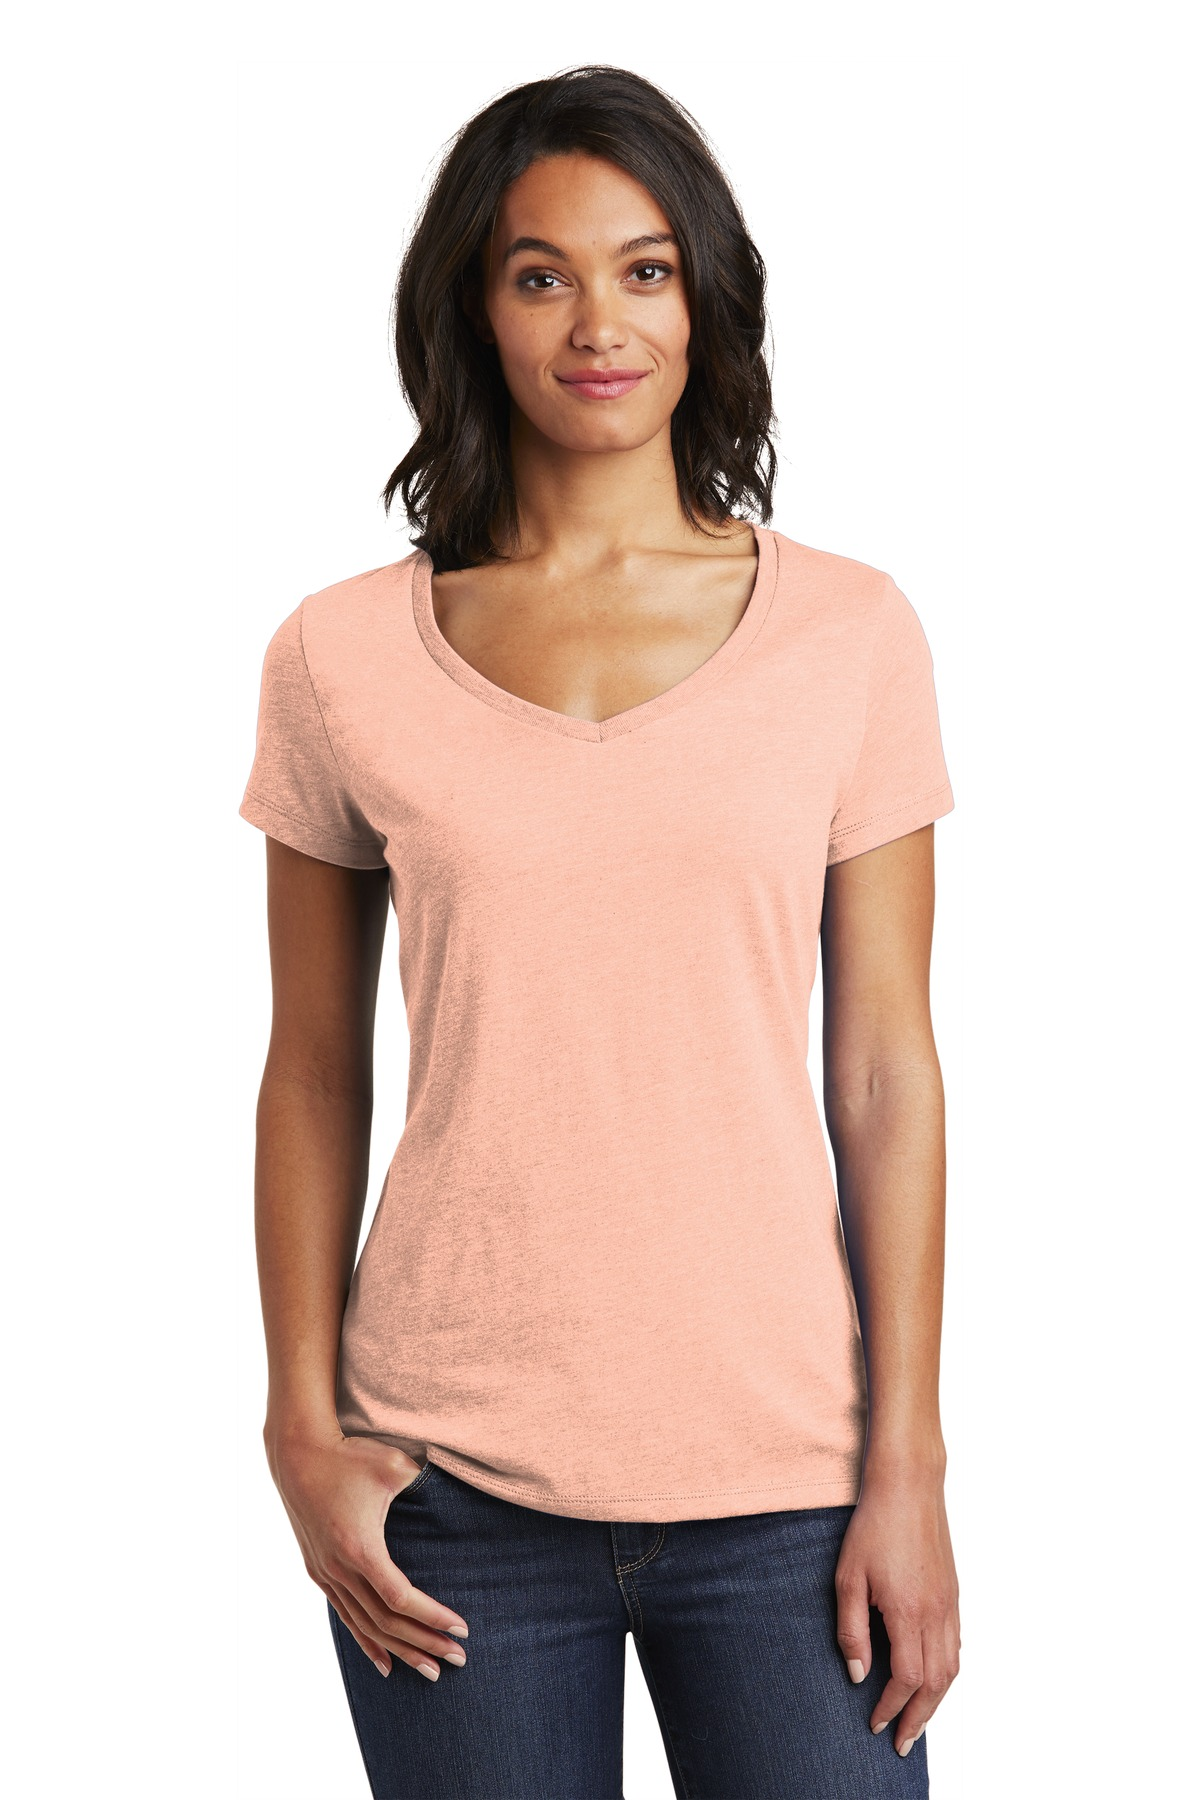 District  ®  Women's Very Important Tee  ®  V-Neck. DT6503 - Dusty Peach